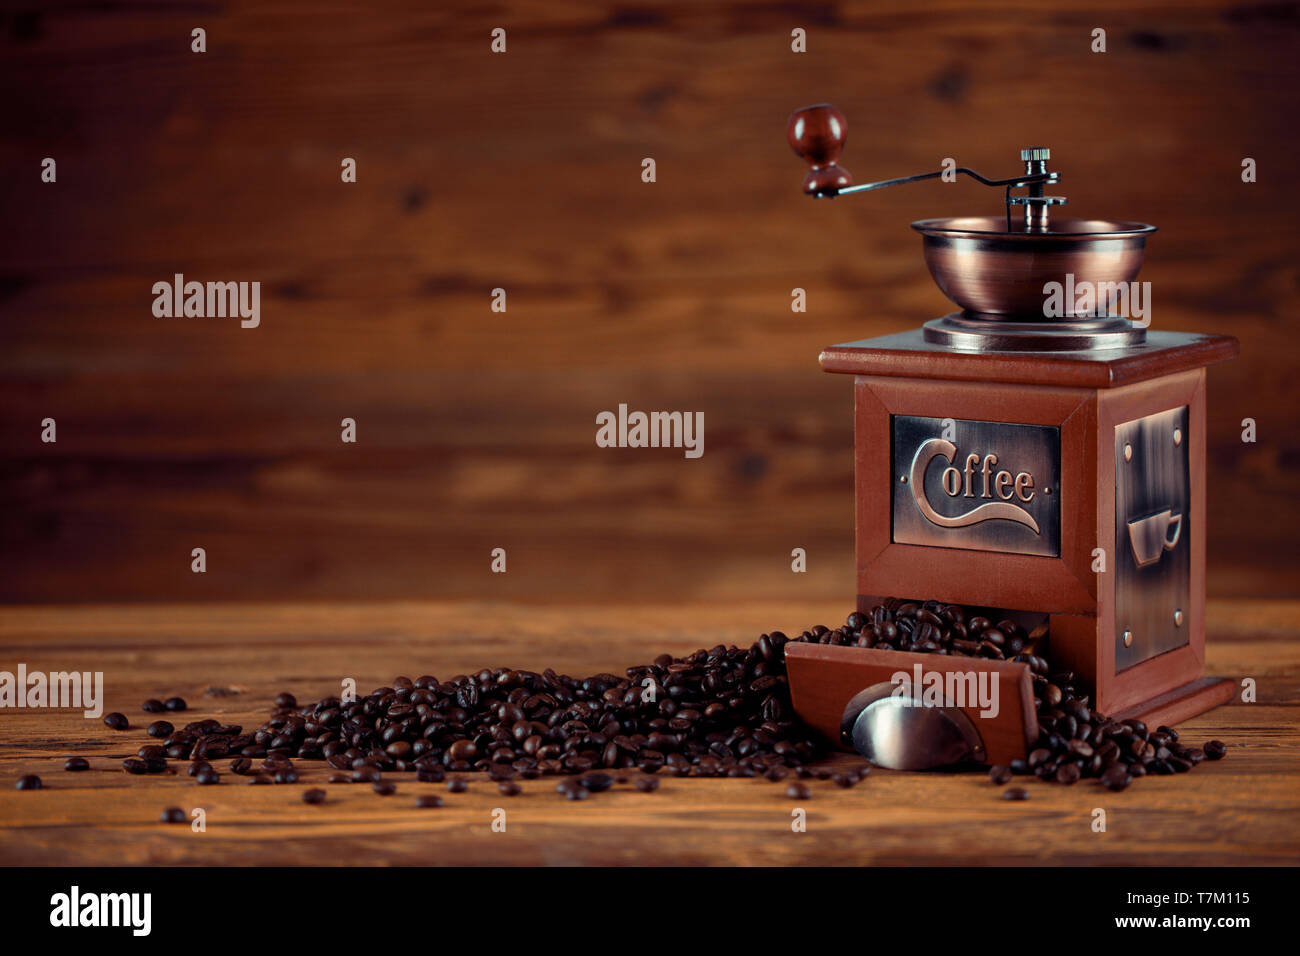 Coffee grinder with coffee beans on wooden background - Stock Image